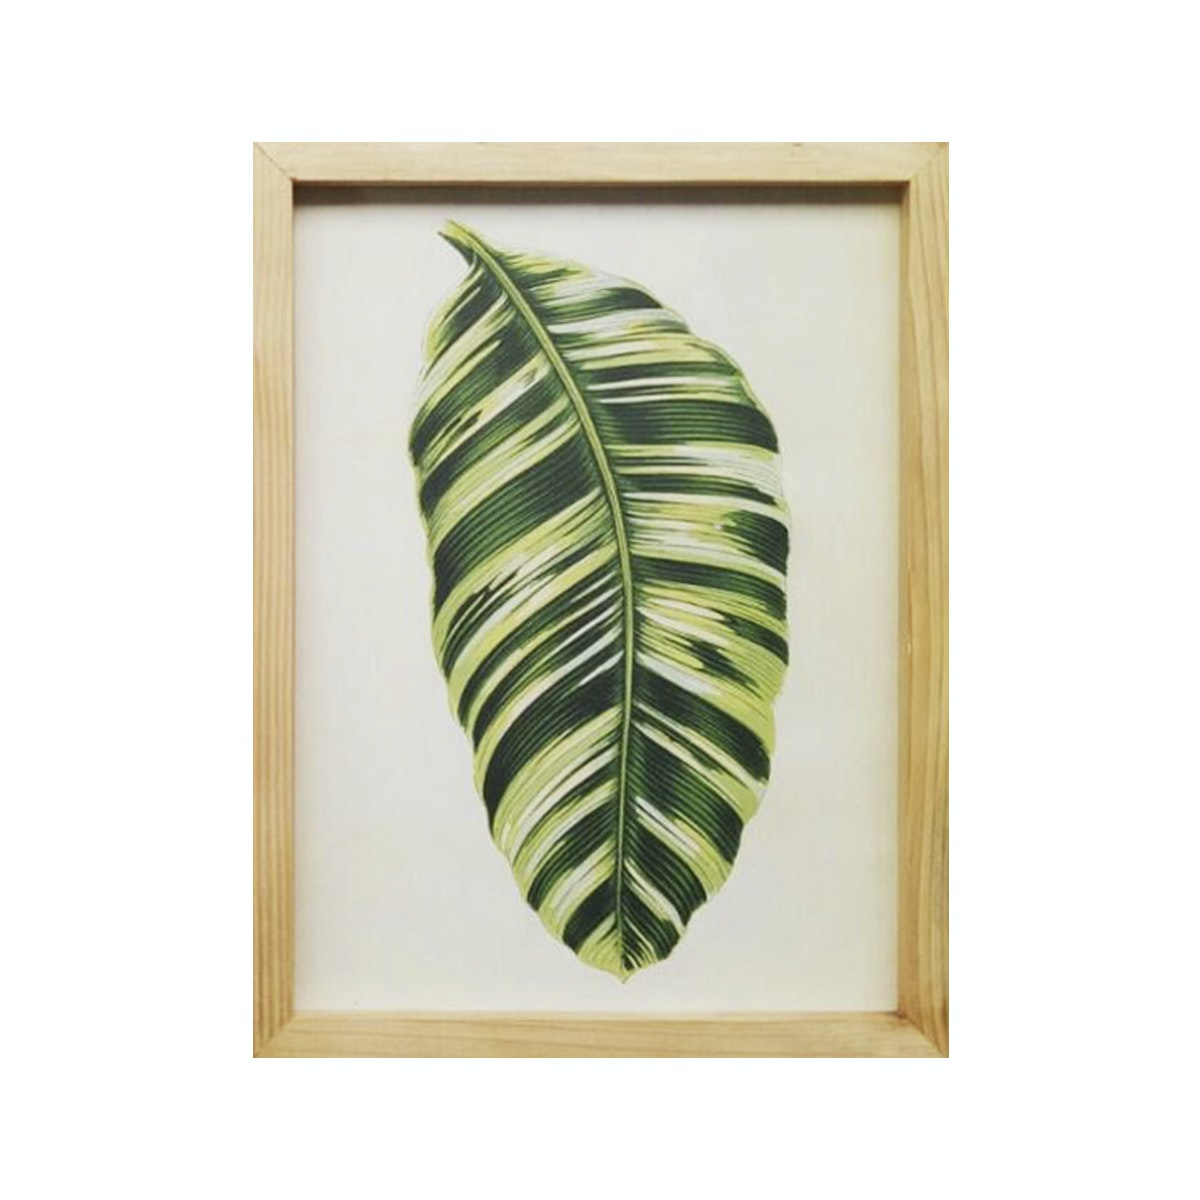 Stiletto In Style Wall Decor / Poster Printing - 30 X 40 - Banana Leaf